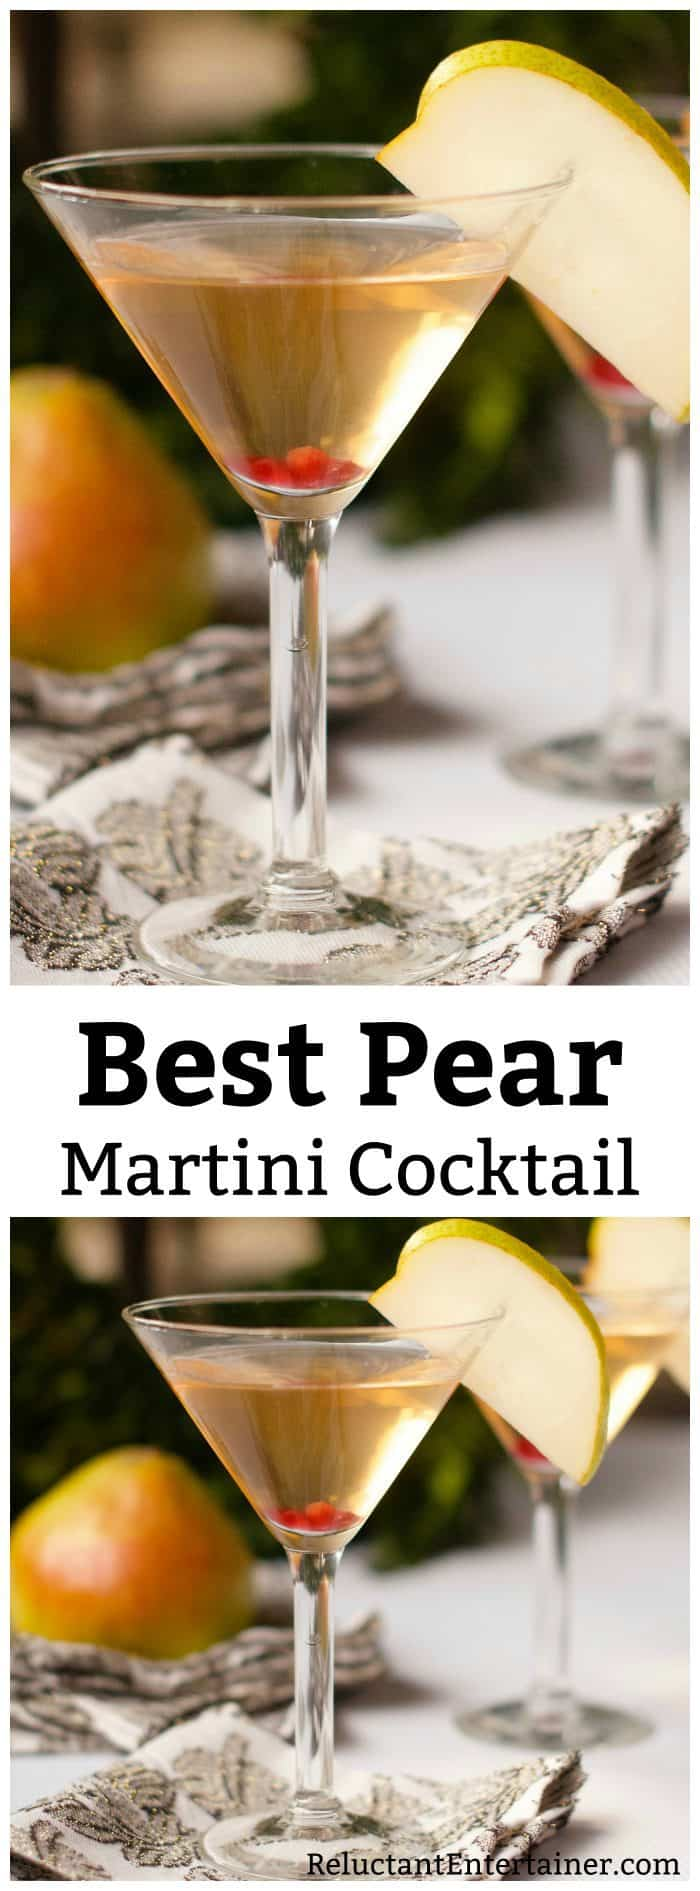 Best Pear Martini Cocktail Recipe